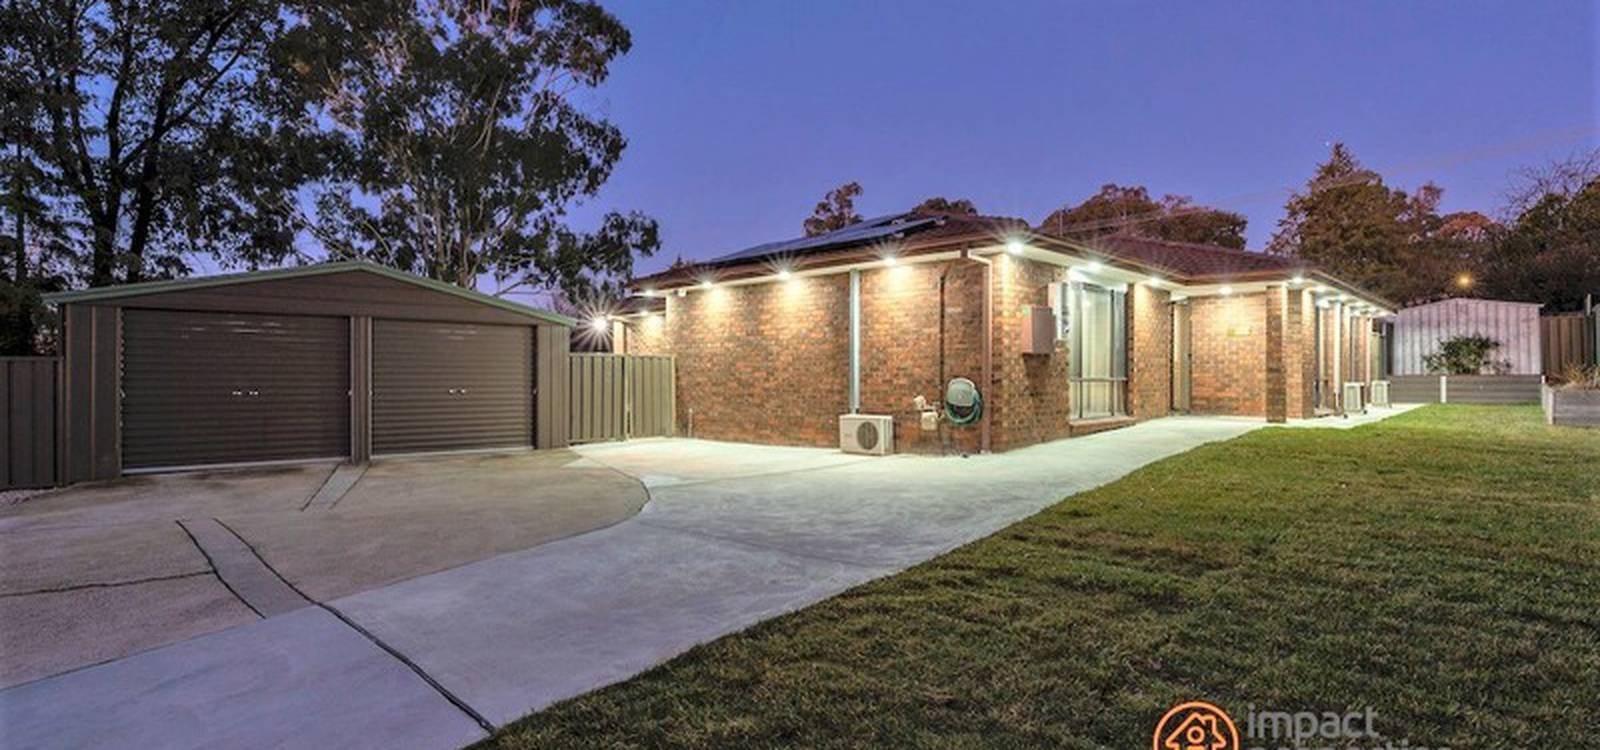 10 Hogue Place GILMORE, ACT 2905 - photo 1